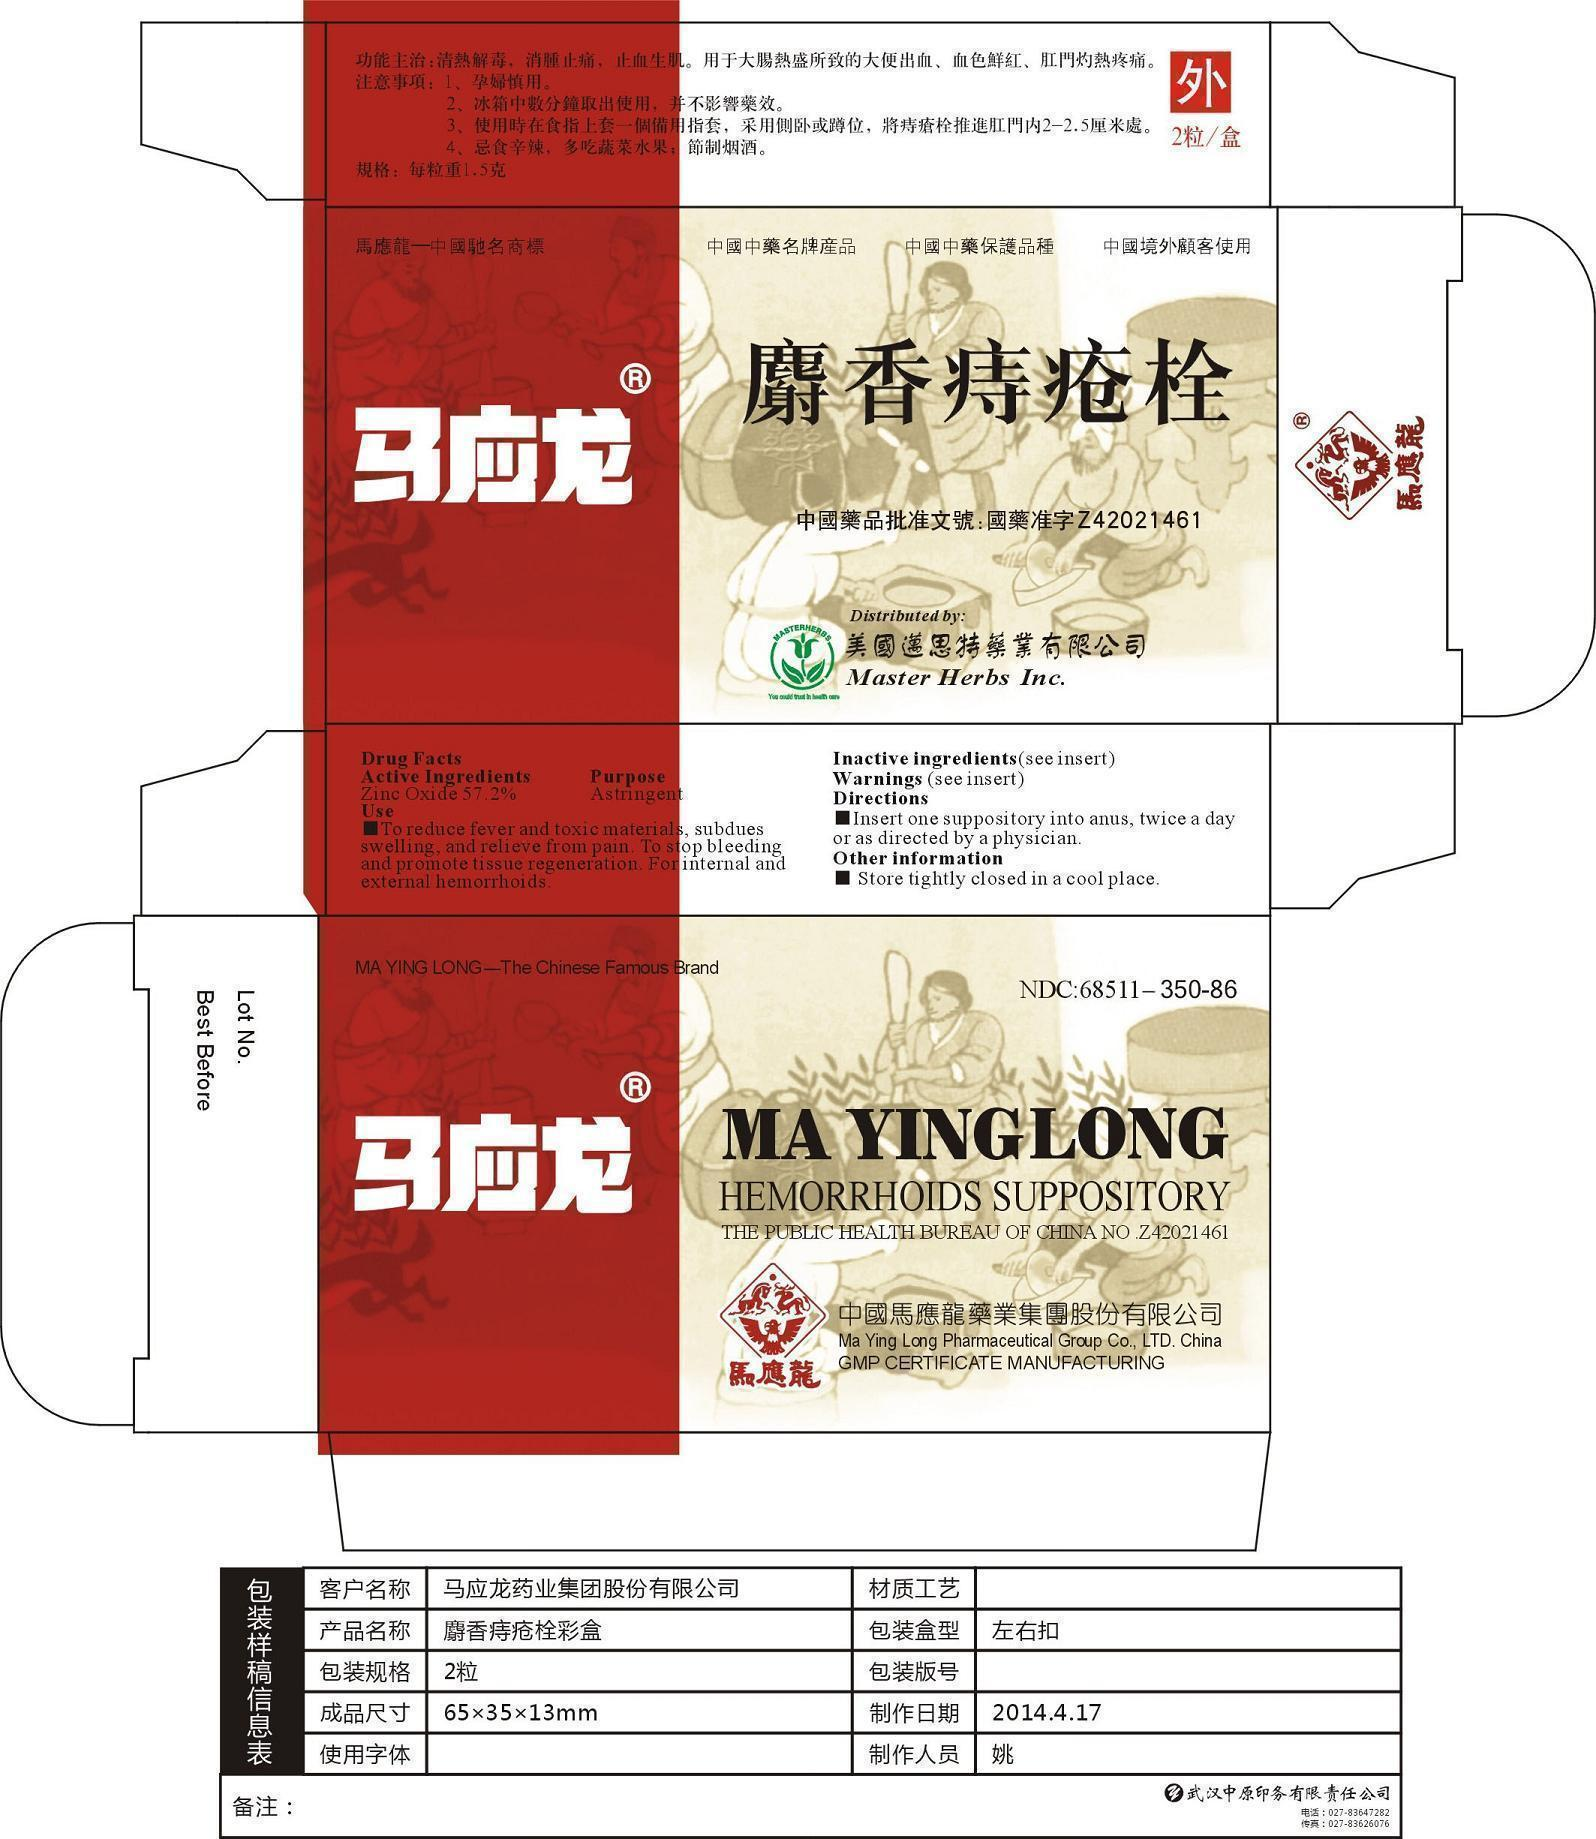 Mayinglong Hemorrhoids (Zinc Oxide) Suppository [Mayinglong Pharmaceutical Group Co., Ltd]